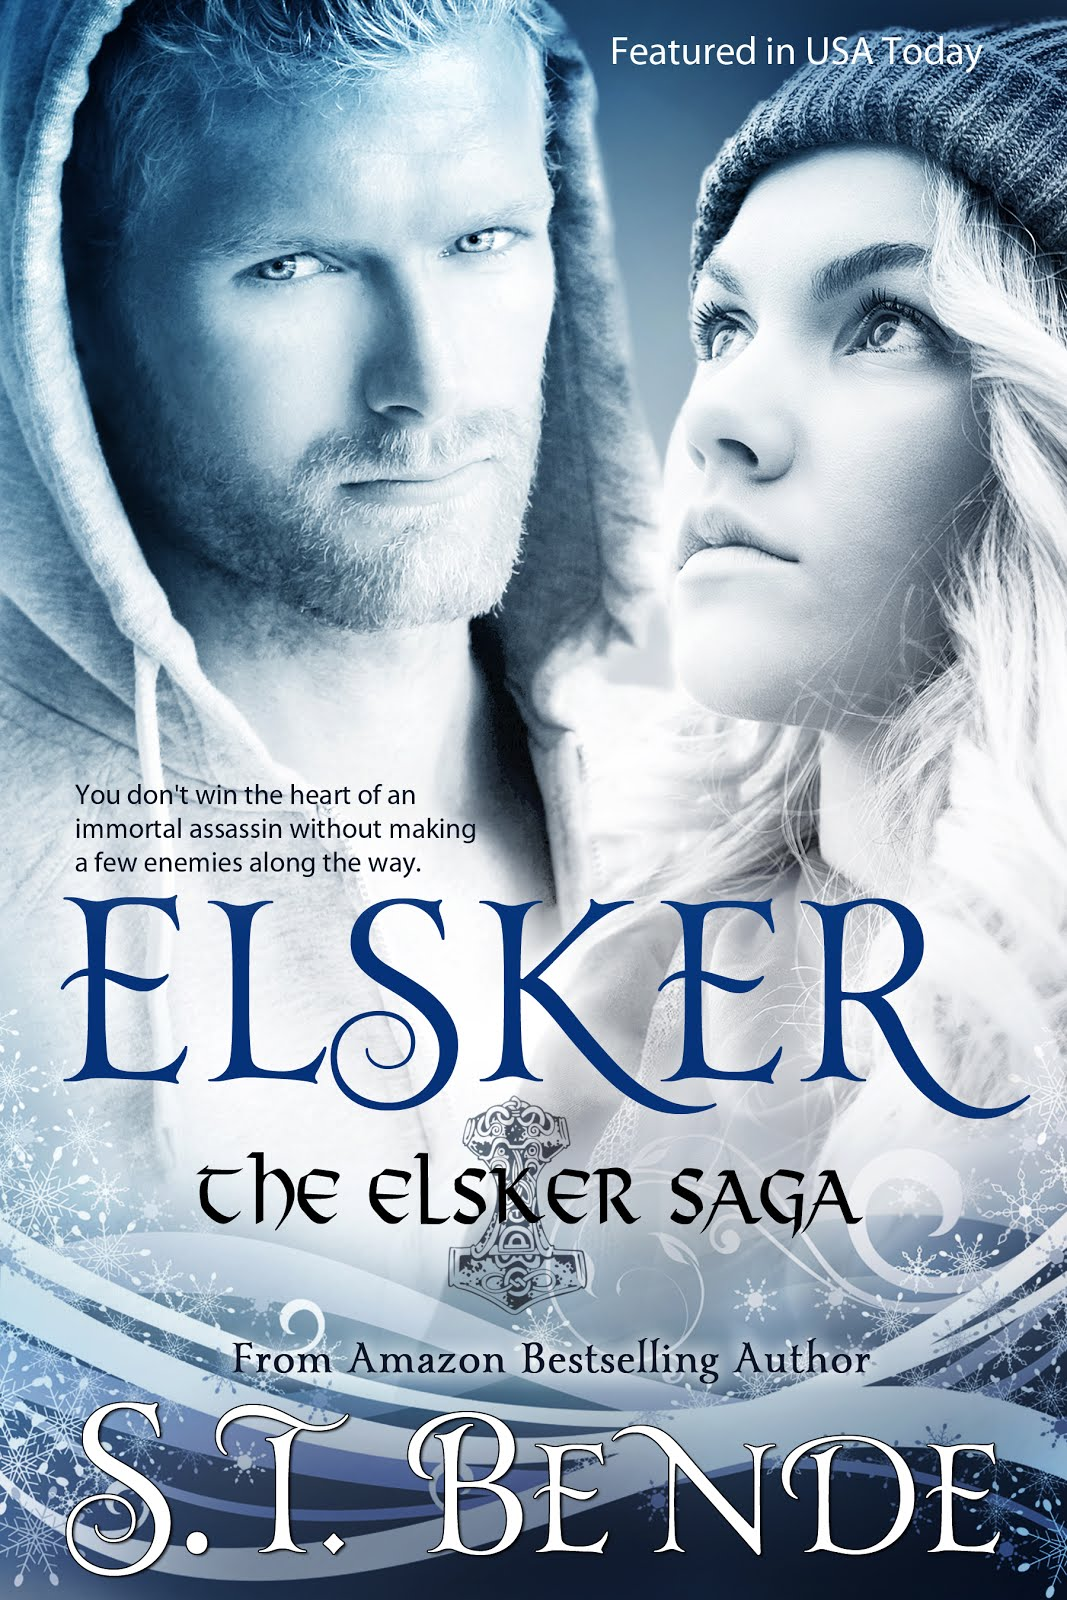 The Elsker Saga Book 1